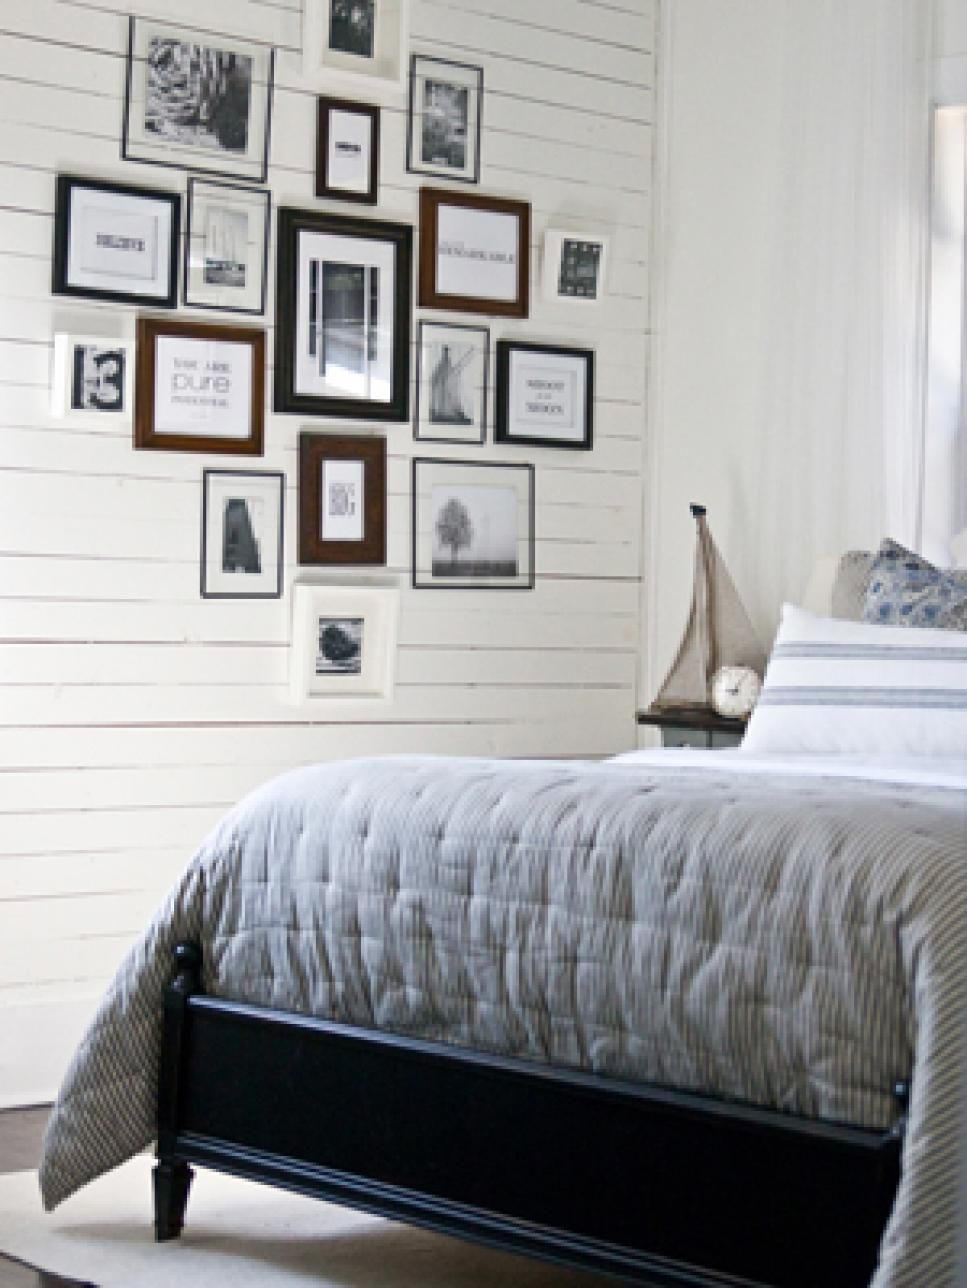 Bedroom wall decorating ideas picture frames - A Dramatic Statement